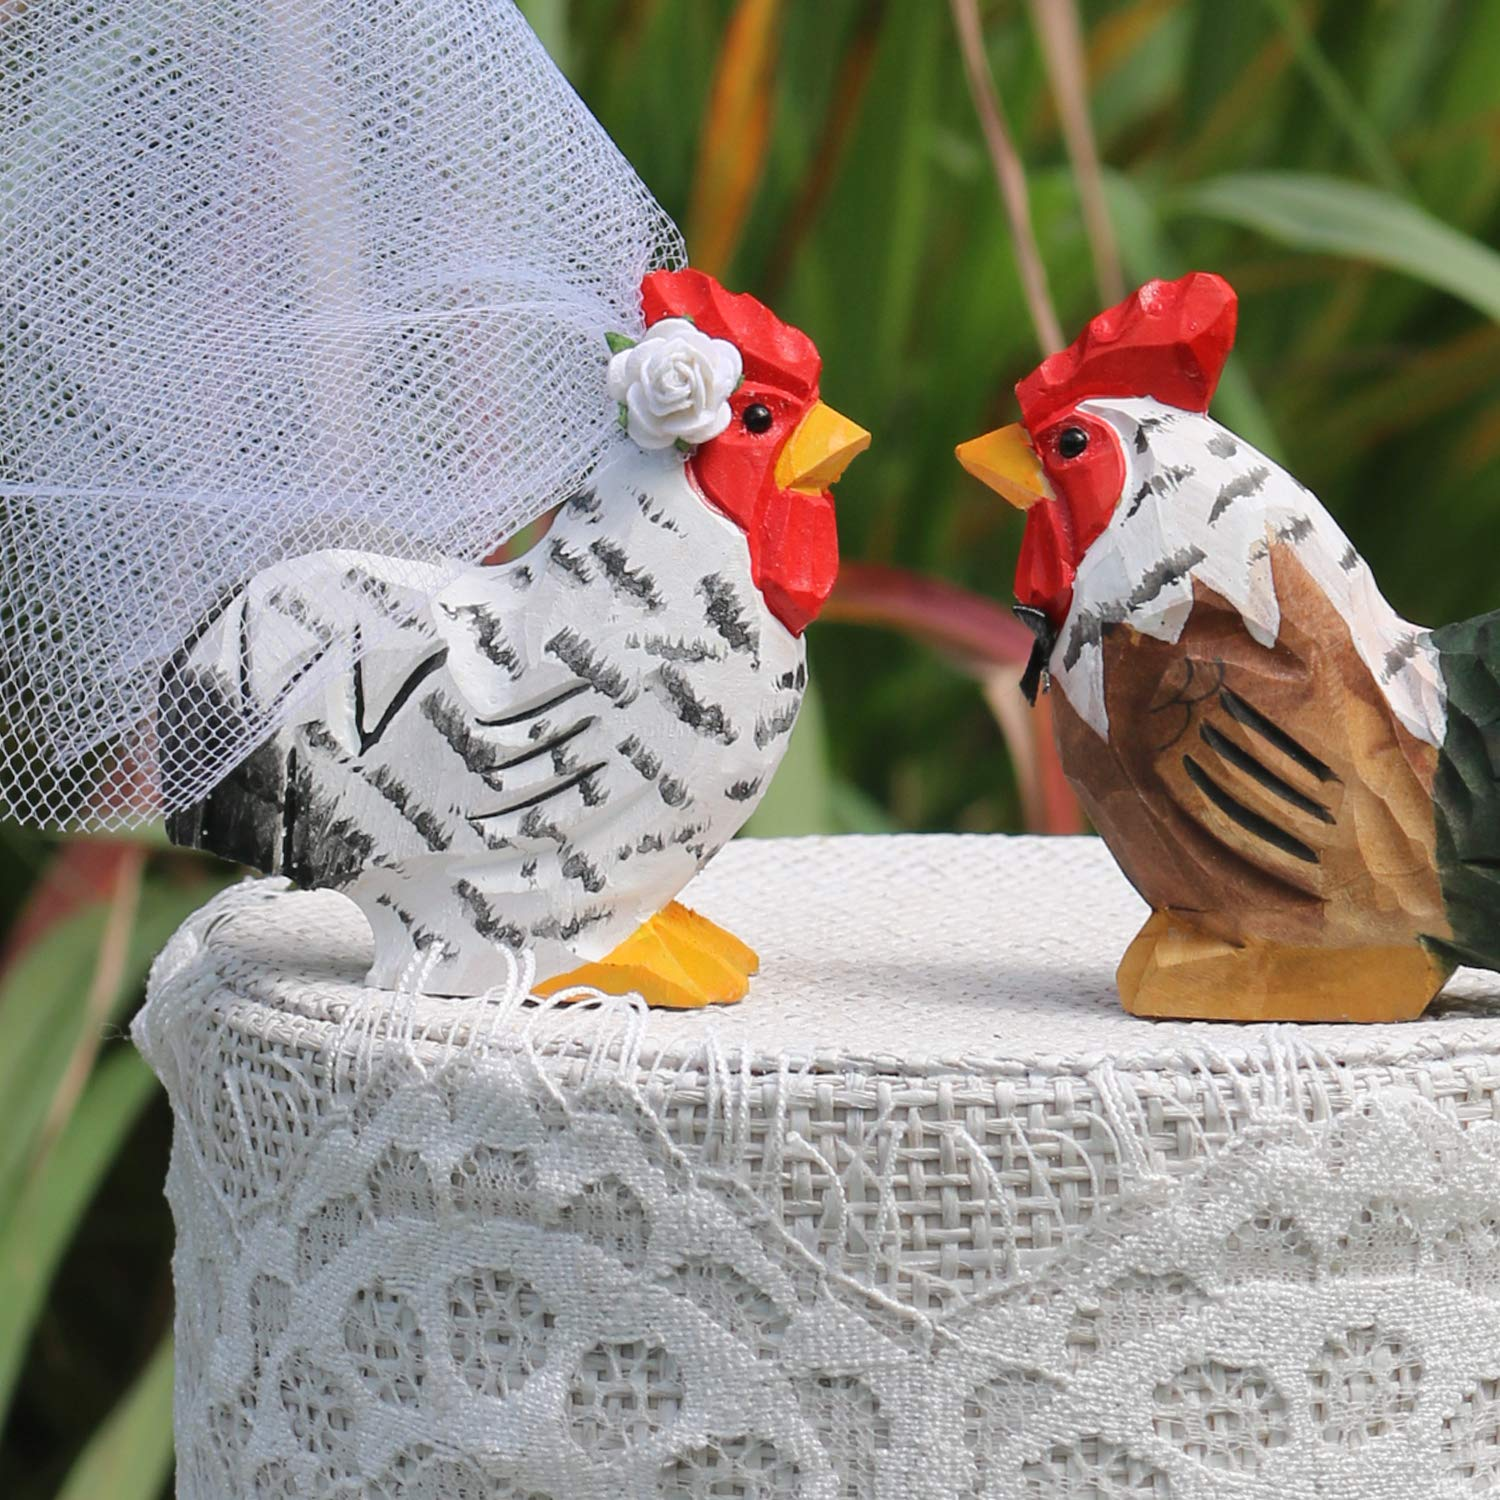 Chicken Wedding Cake Topper: Handcarved, Handpainted Wooden Hen & Rooster/Bride & Groom Love Bird Cake Topper for a White Wedding